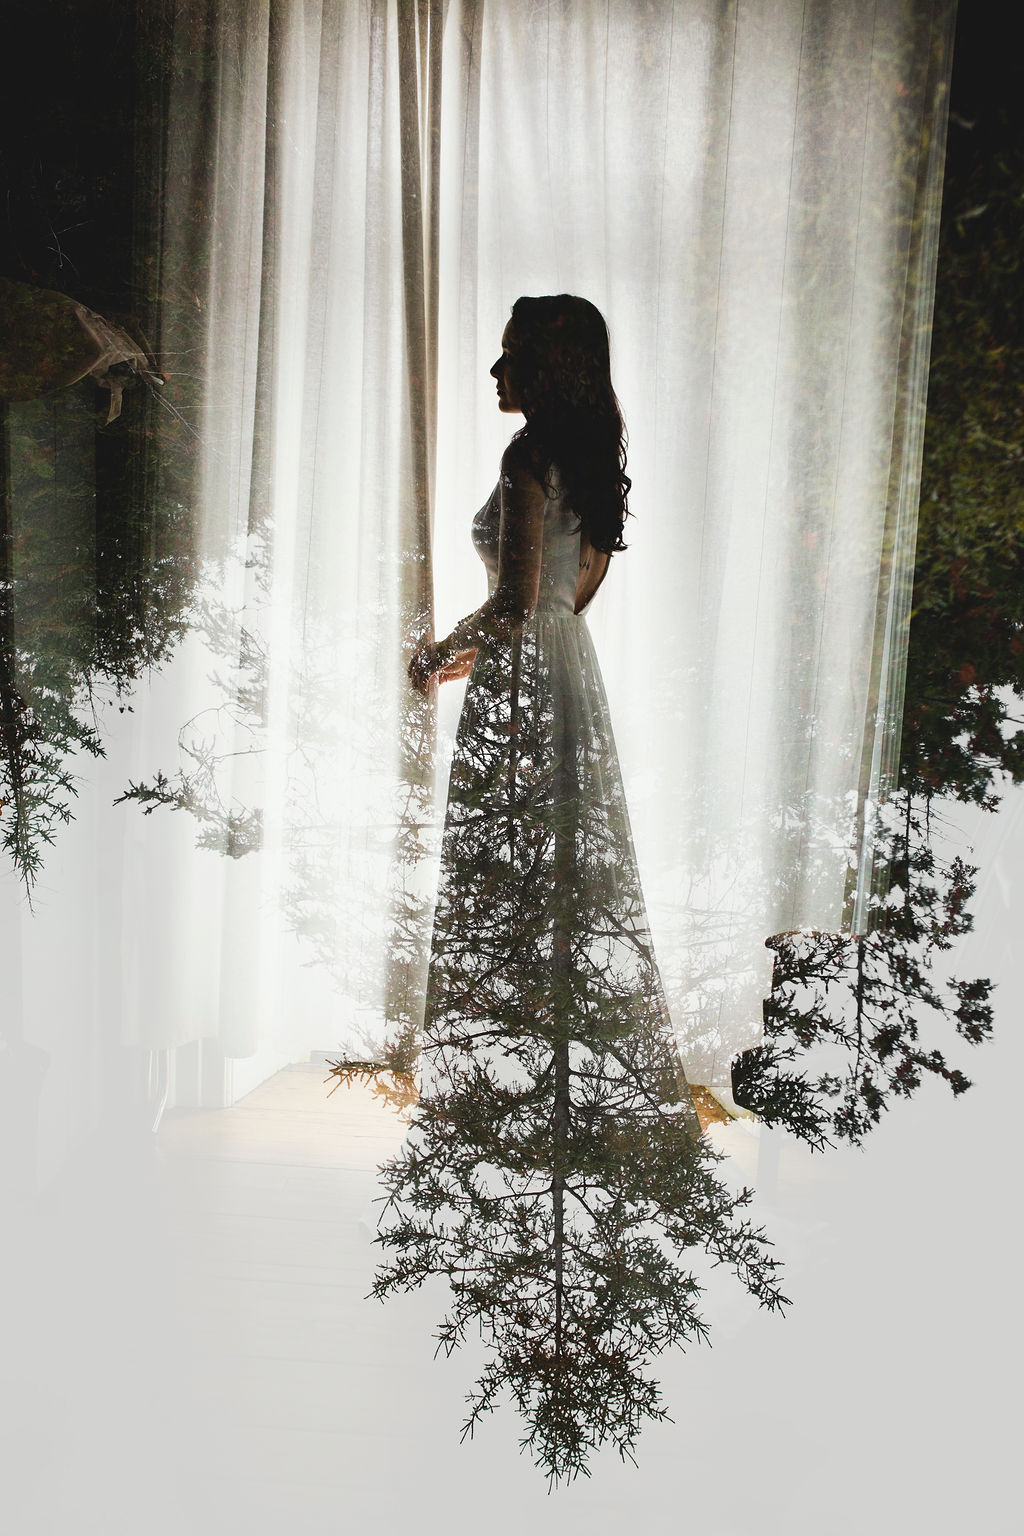 Ottawa Wedding Photography, Ottawa Wedding Photographer, Ottawa wedding photos, wedding photos, bridal portraits, wedding photography style, double exposure